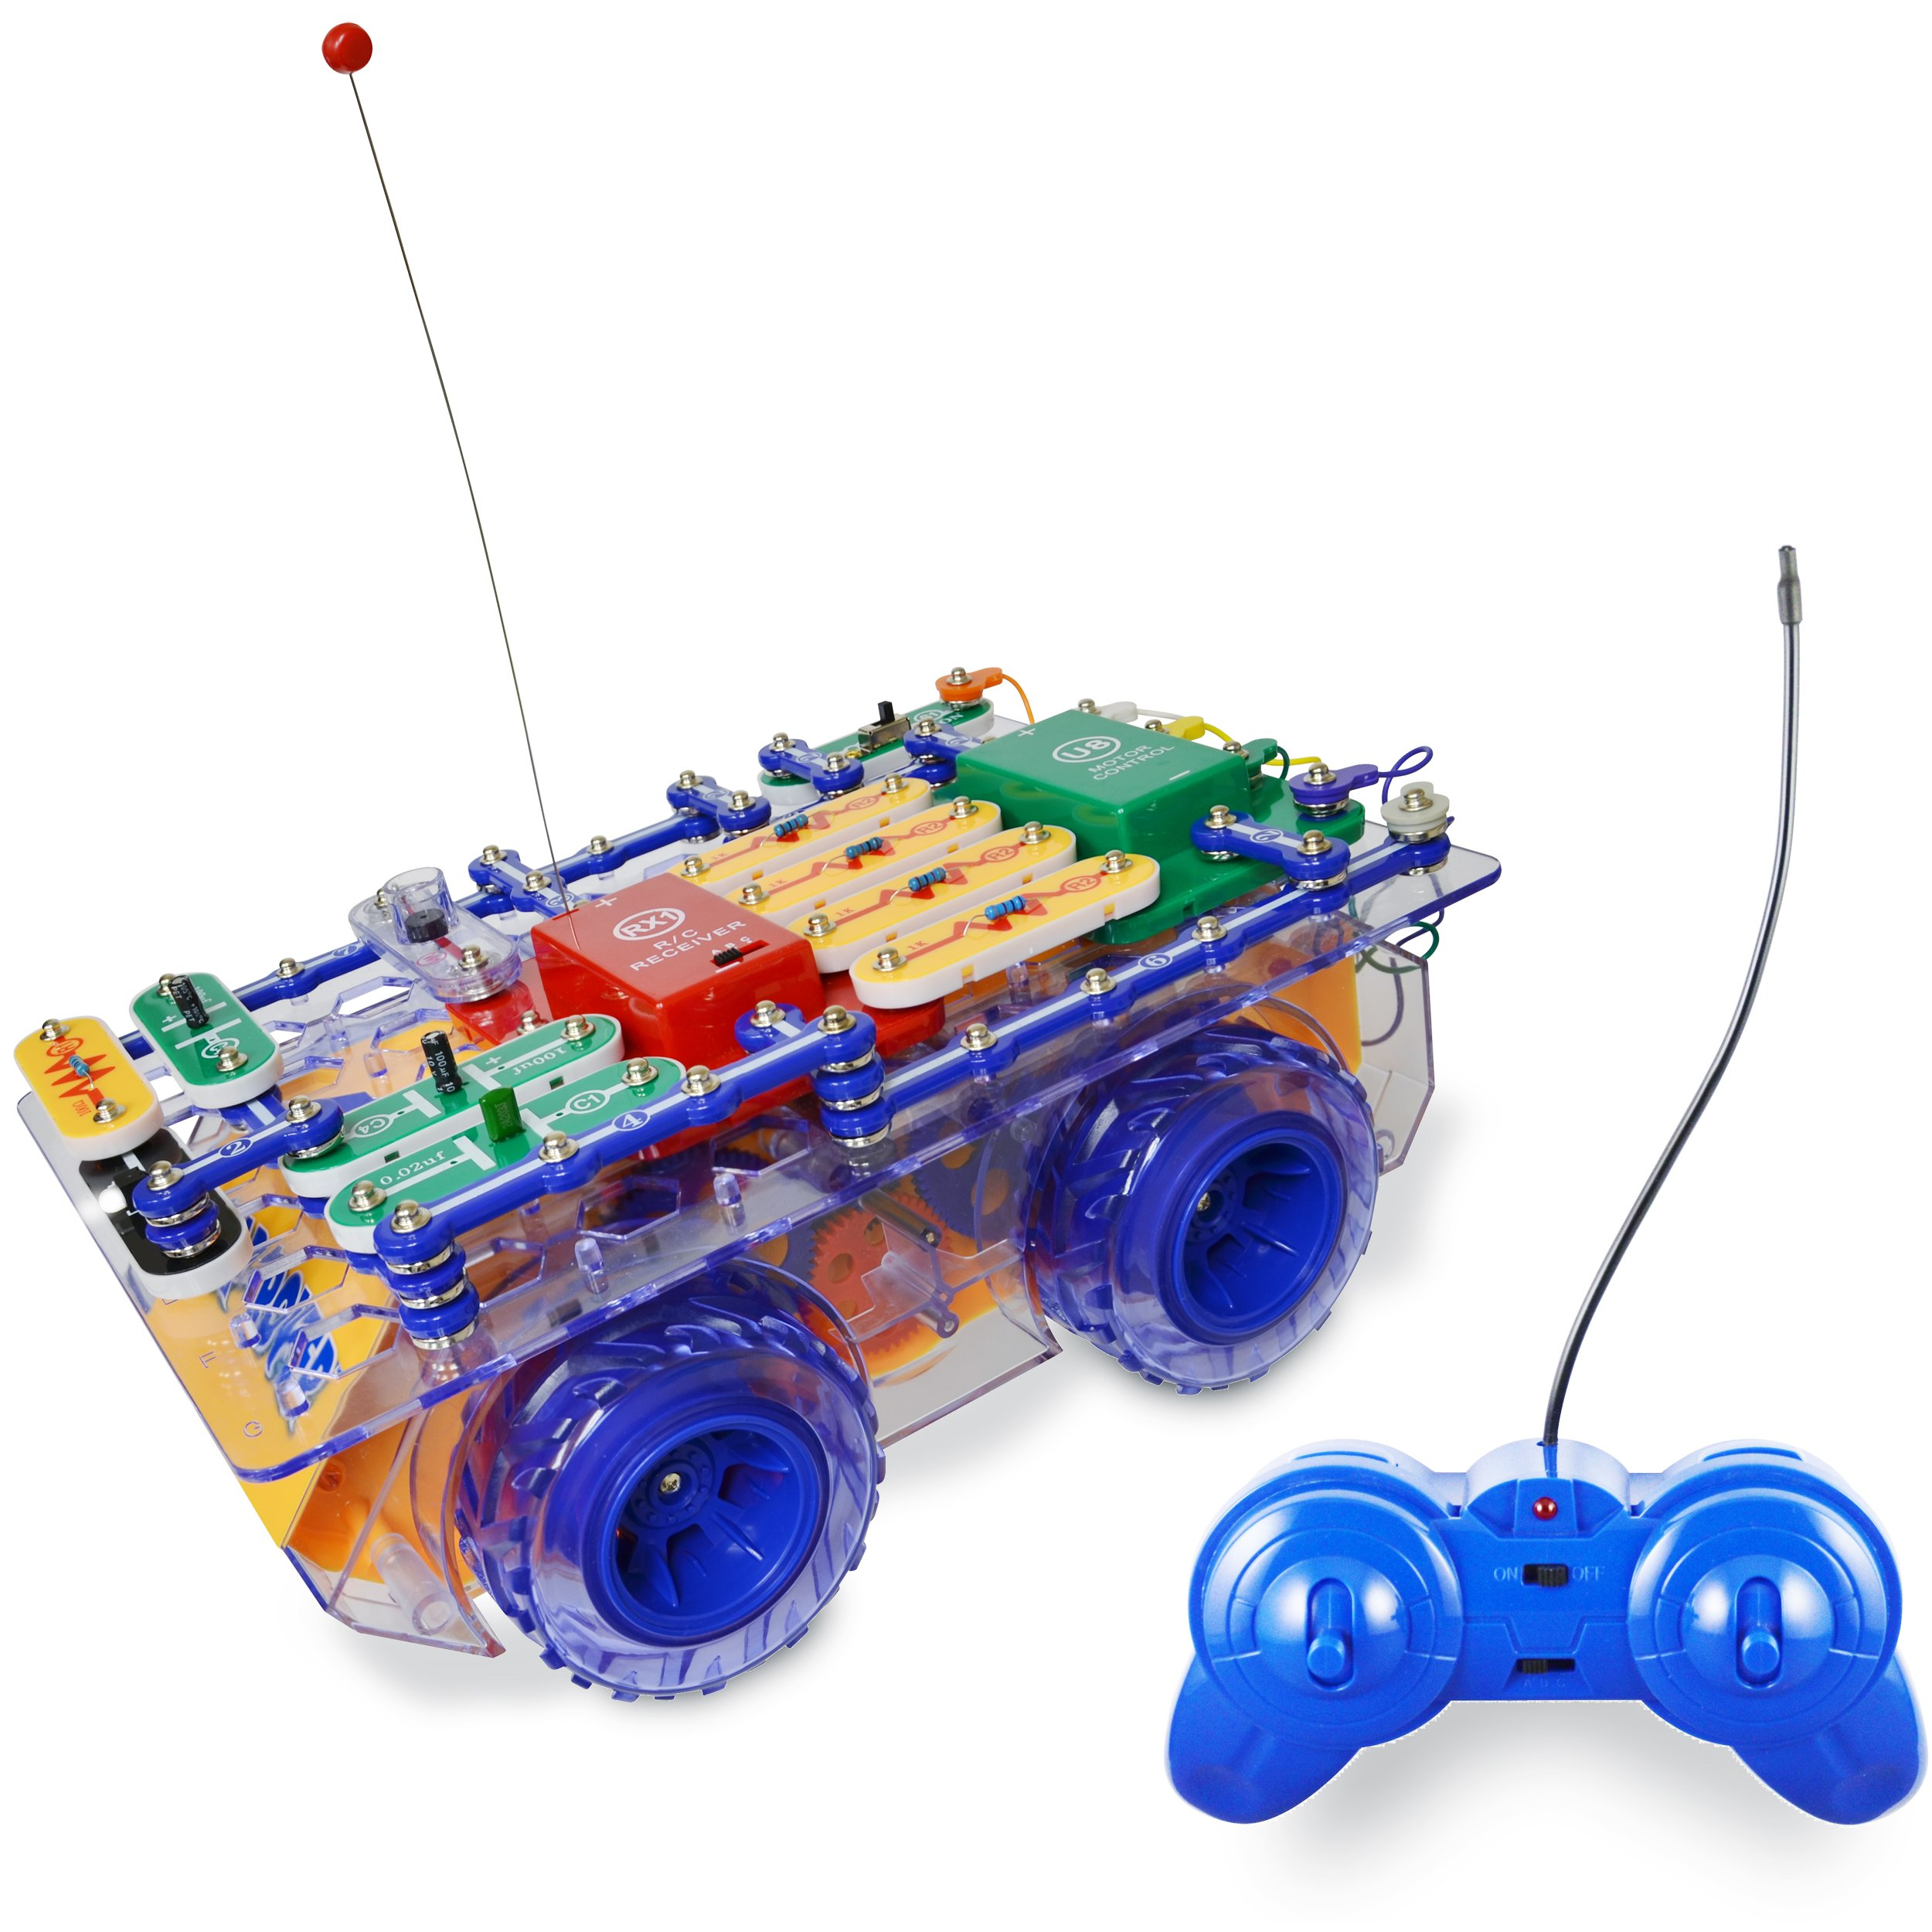 Snap Circuits R/C Snap Rover Electronics Exploration Kit | 23 Fun STEM Projects | 4-Color Project Manual | 30+  Snap Modules | Unlimited Fun by Snap Circuits